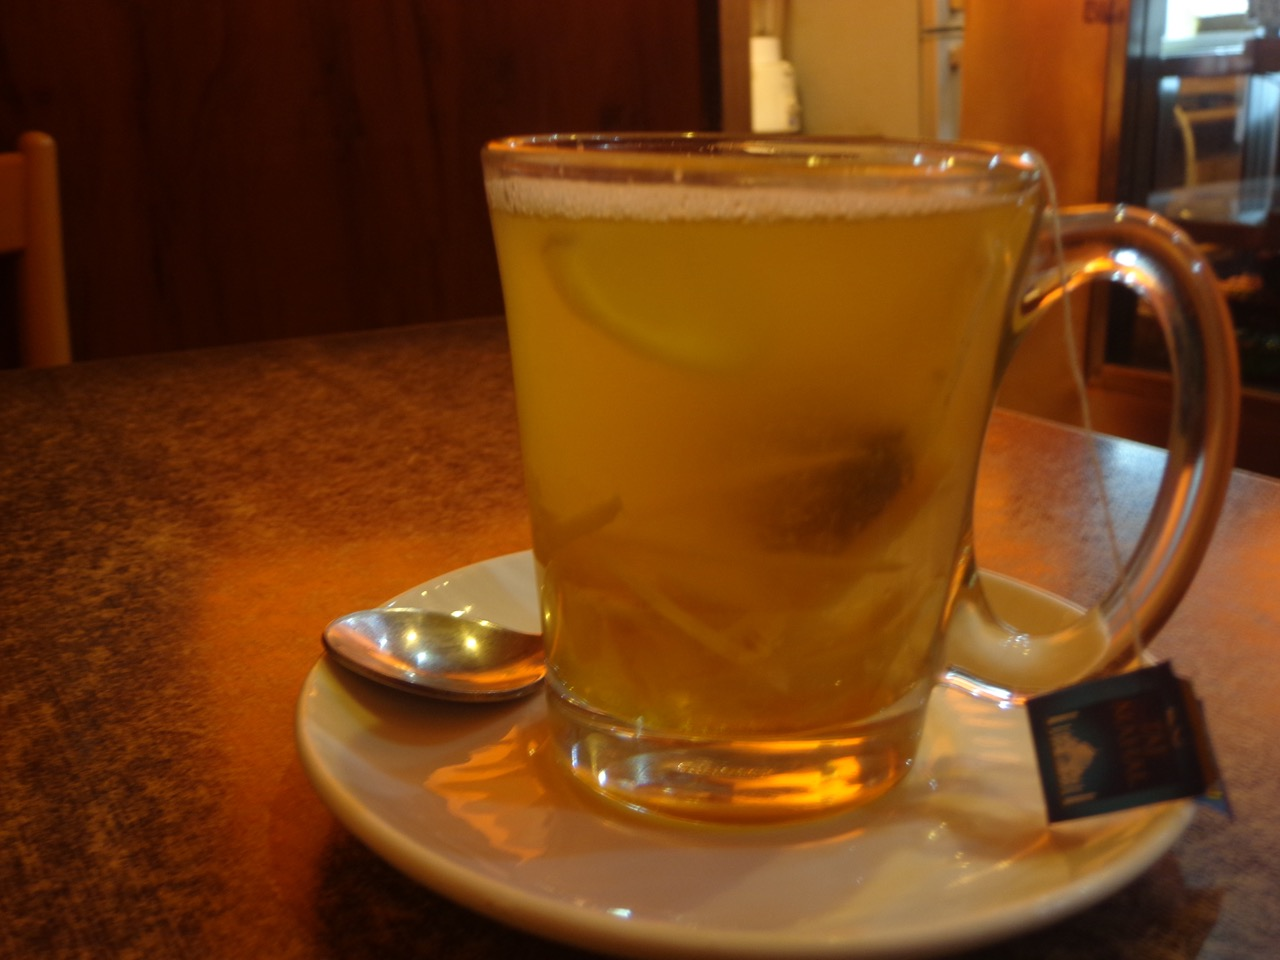 This is Ginger, Lemon and Honey Tea. I lost count of the number of cups / glasses I had throughout the day.